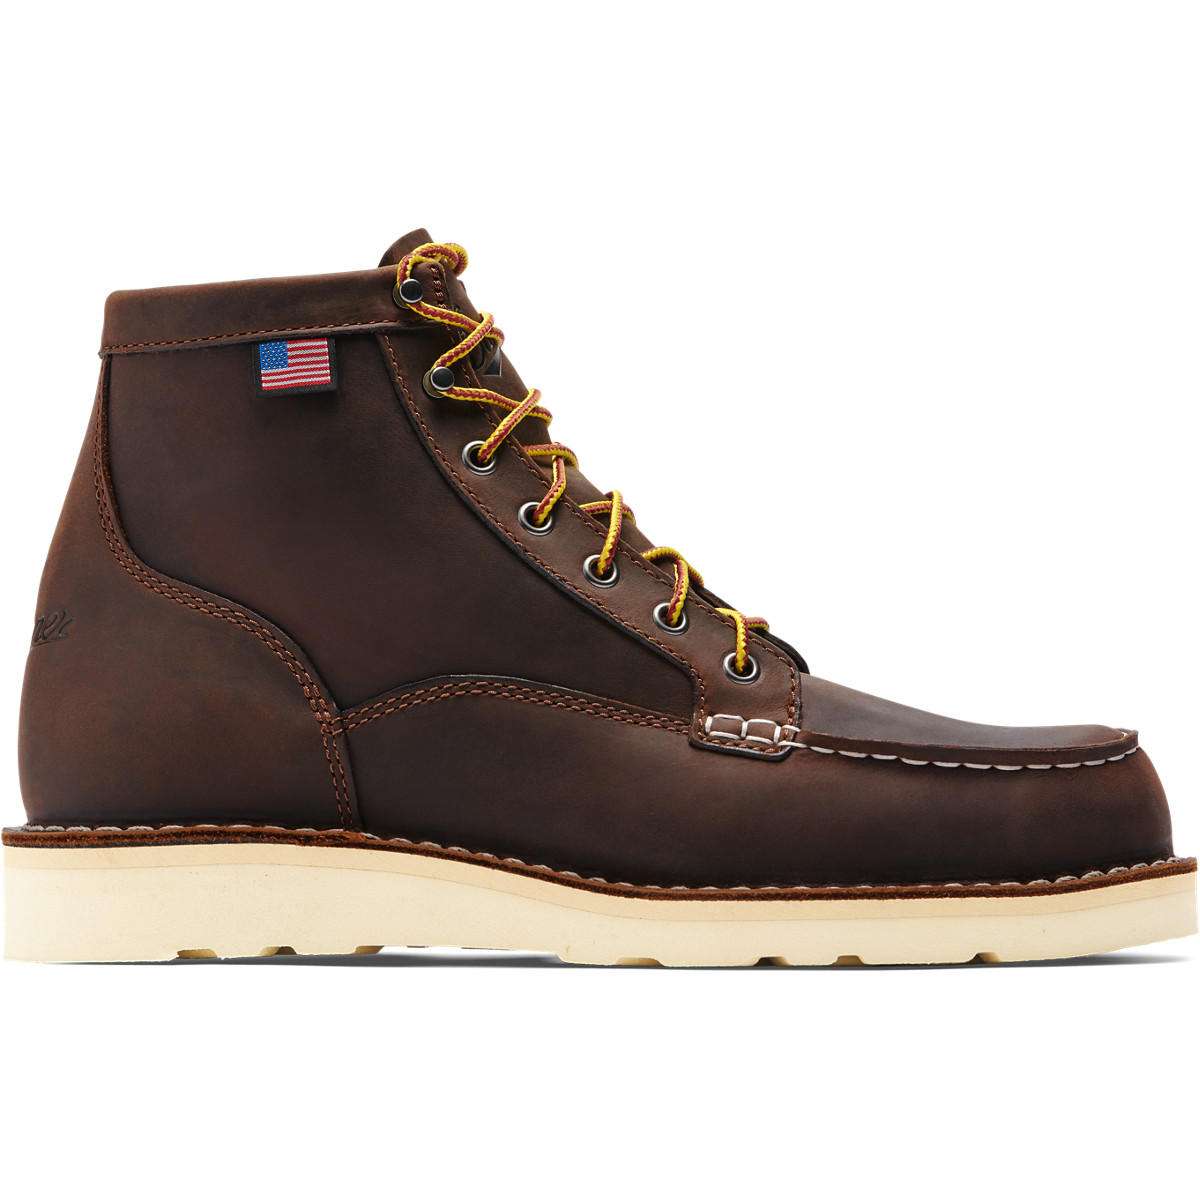 Watch Danner Boots: AW13 Collection video